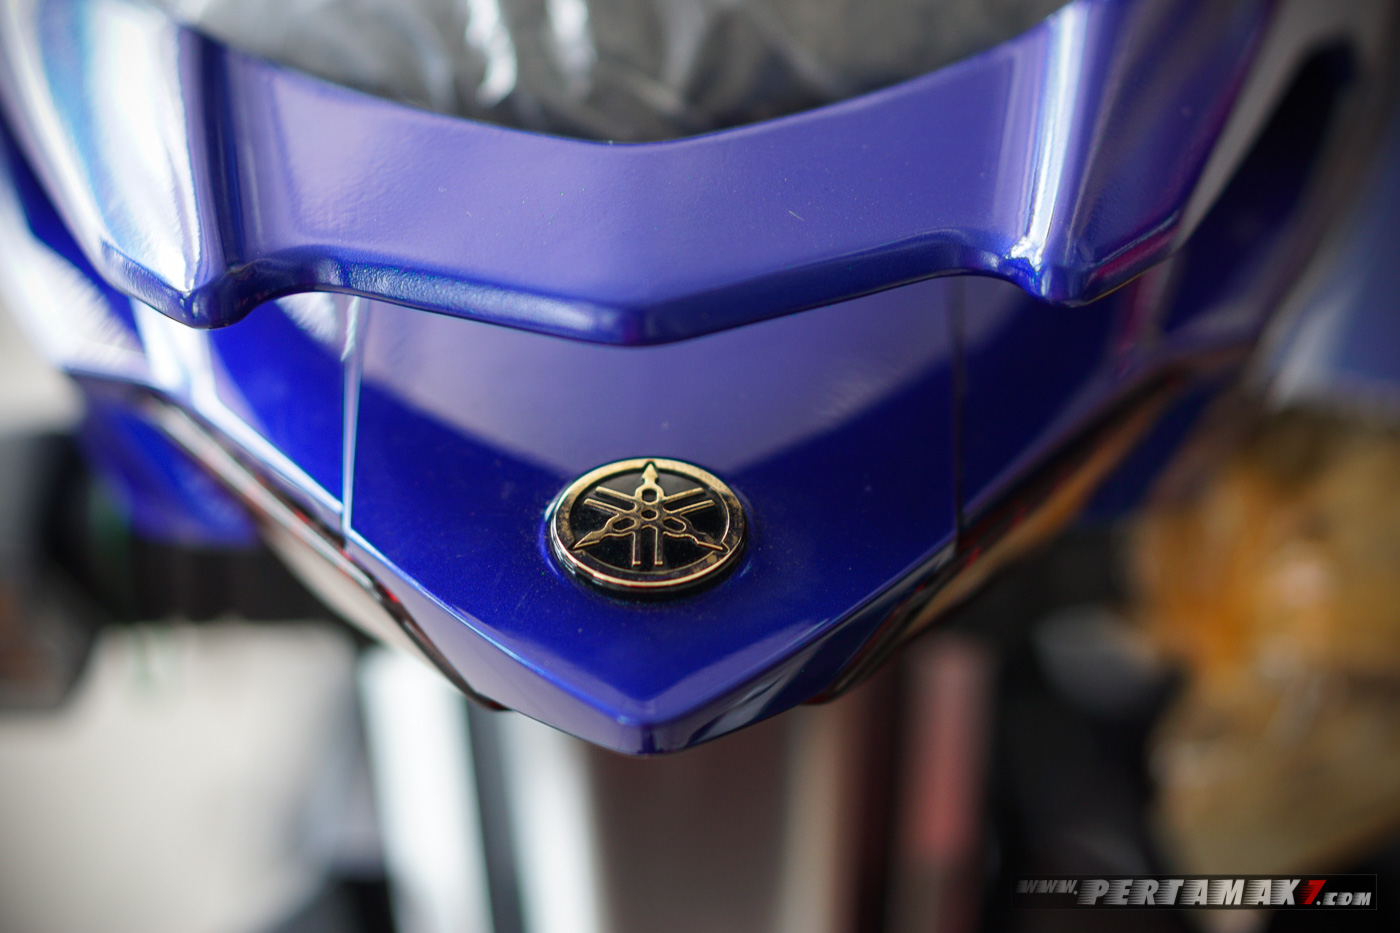 Emblem emas Yamaha MX KING MotoGP Movistar 2019